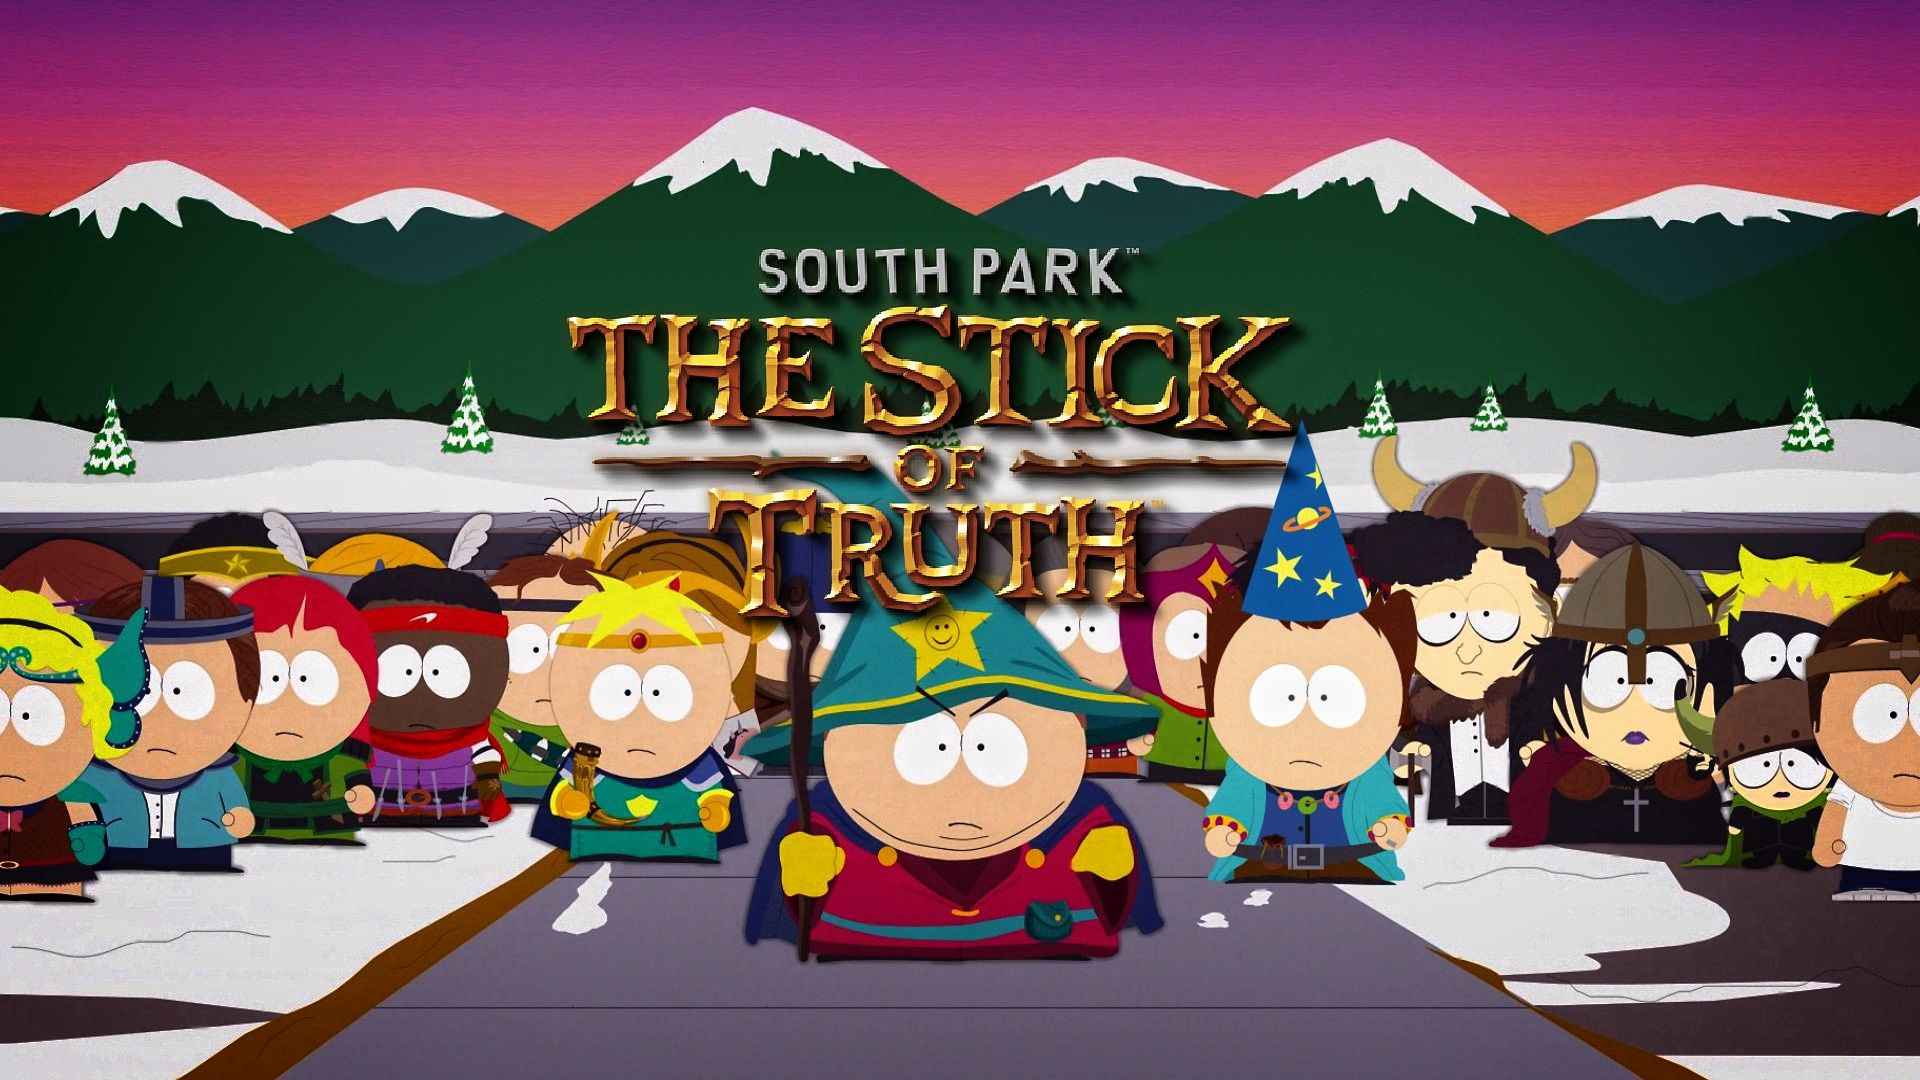 South Park: The Stick of Truth İnceleme